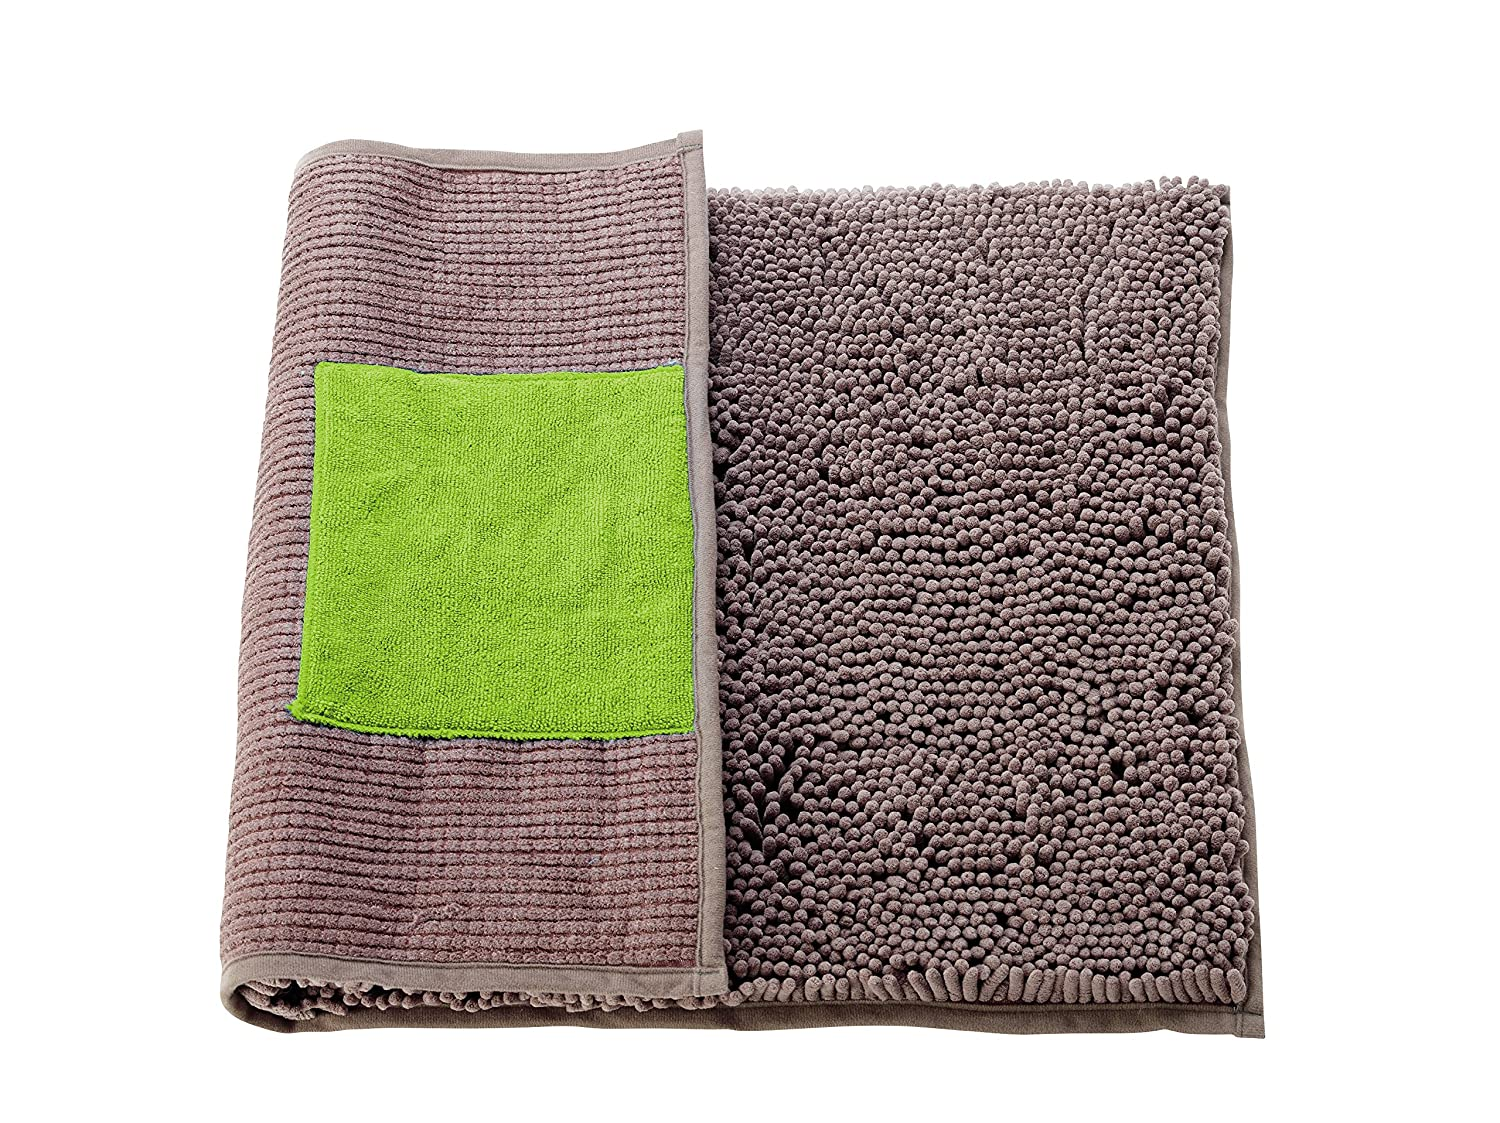 BISSELL DRYDOG Mat 2-in-1 Bath Mat & Towel, 2065A